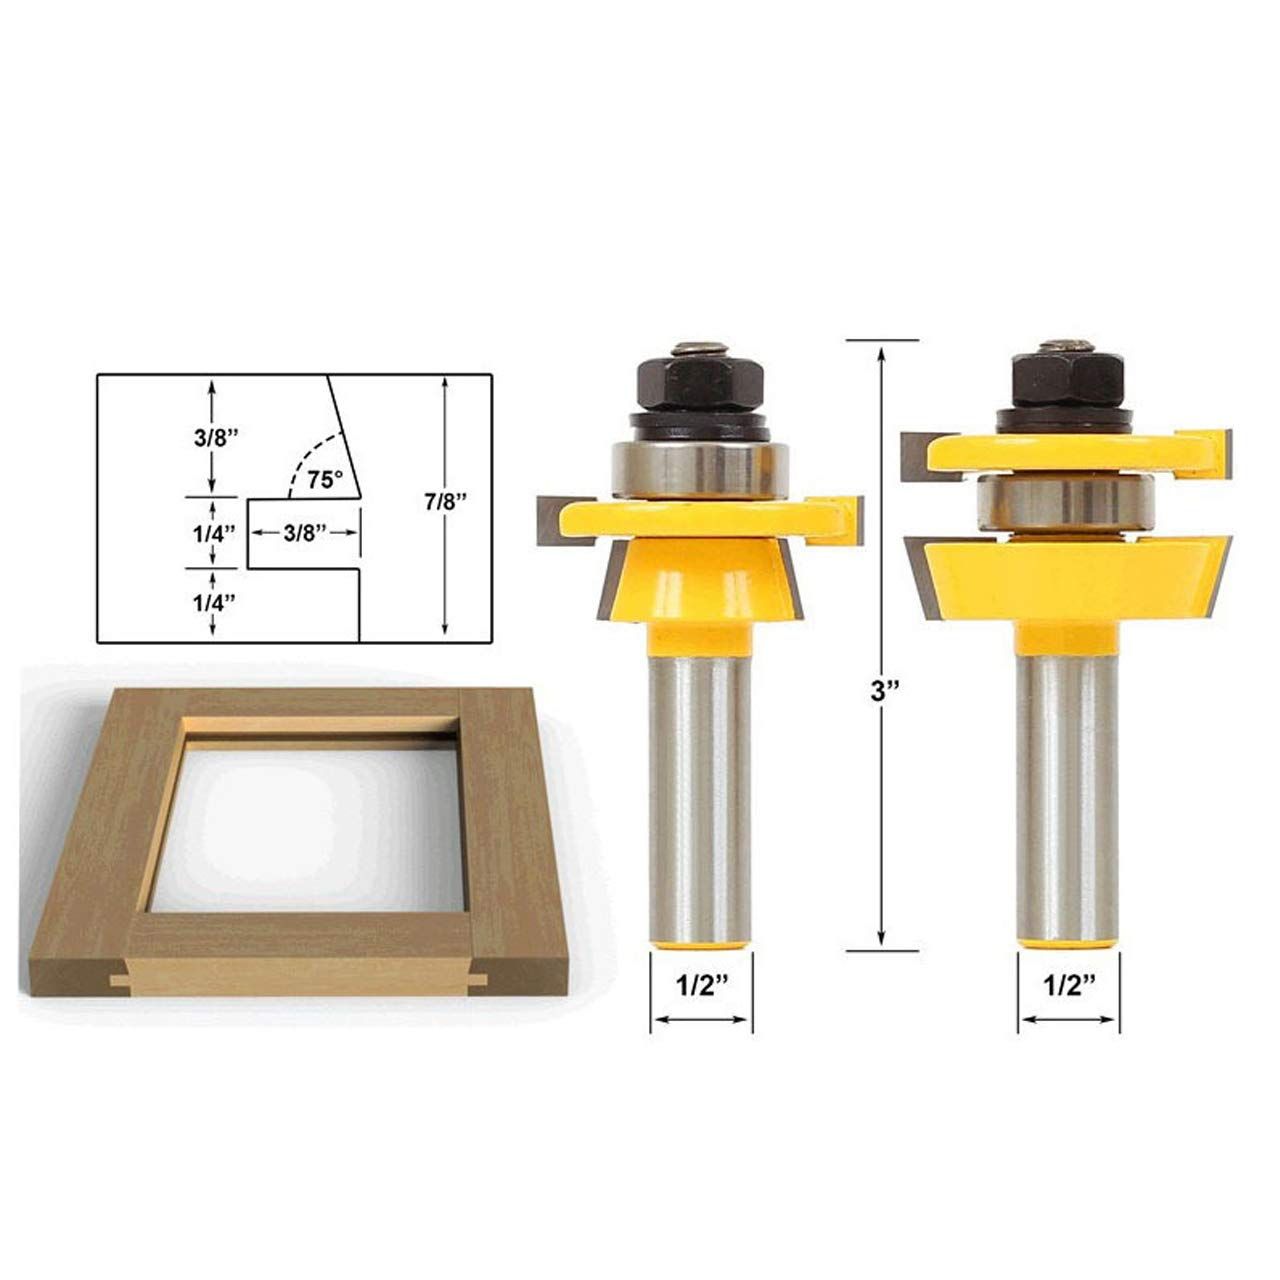 HOEN Rail and Stile Router Bits with Matched 2 Bit Round-Over 1/2-Inch Shank by HOEN (Image #1)